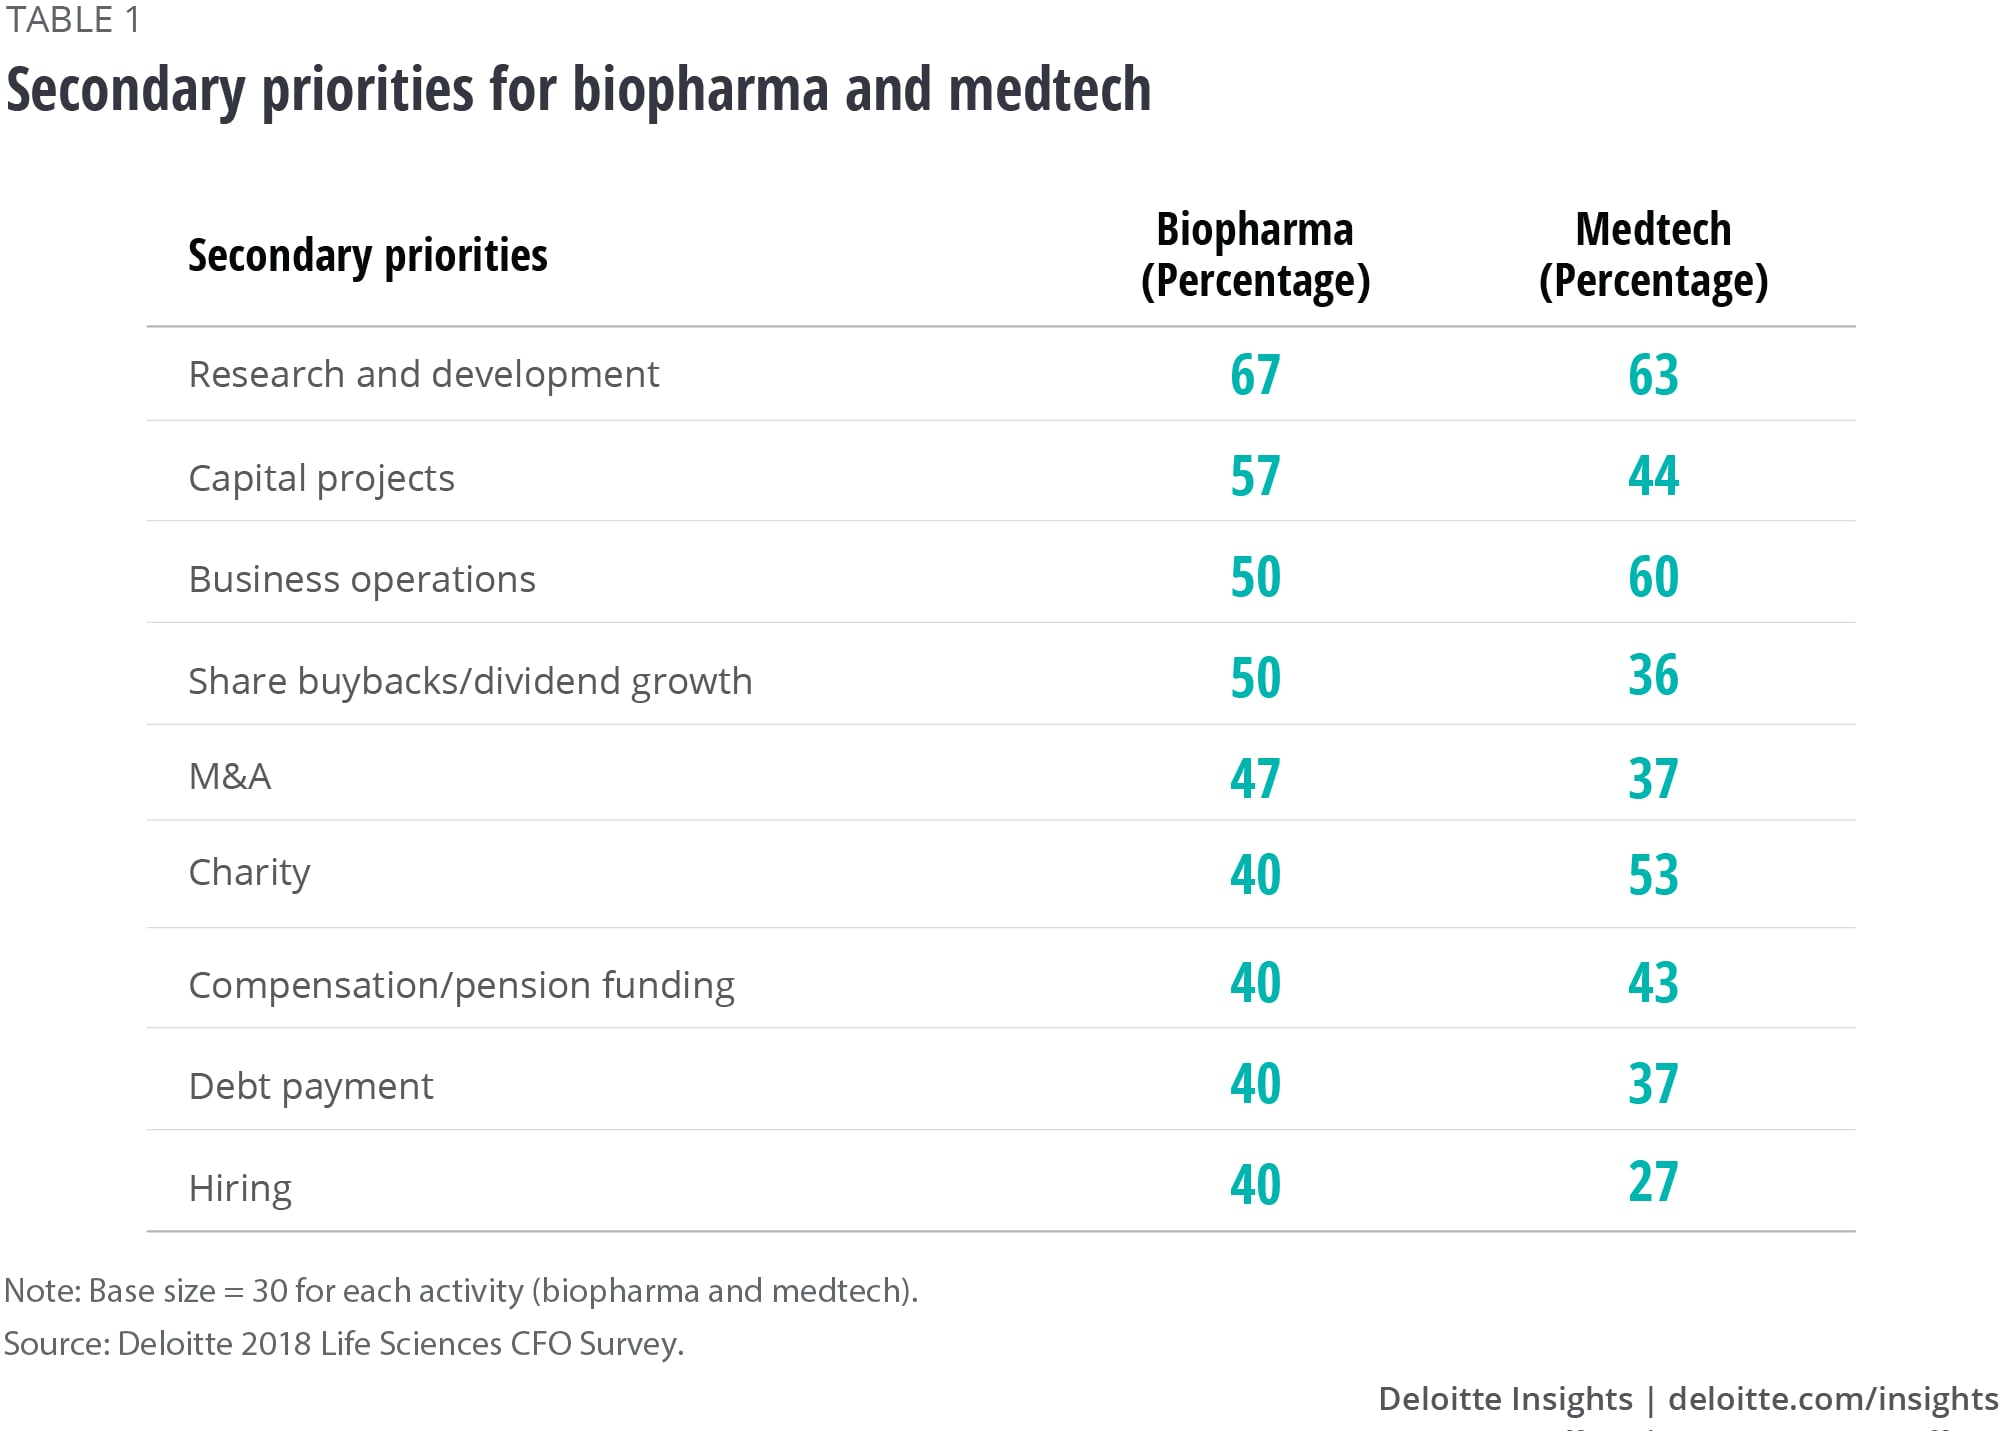 Secondary priorities for biopharma and medtech